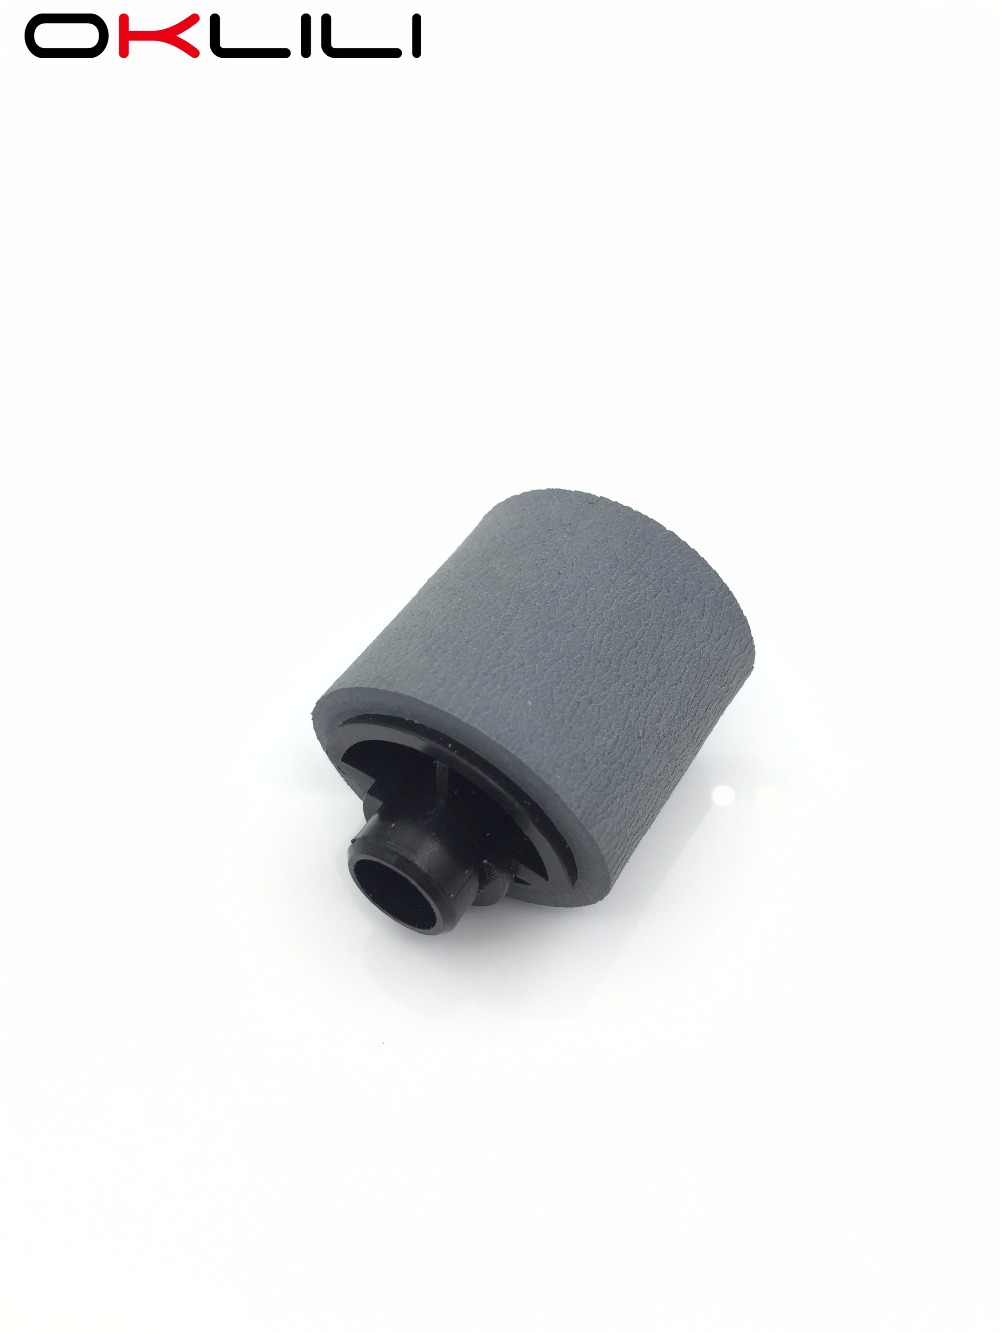 10X JC72-01231A Pickup Roller for Samsung ML1510 1710 1740 1750 2250 SCX4016 4116 4100 4200 4220 4300 4500 4520 4720 SF560 SF565 heat upper pressure roller for samsung scx 4100 scx 4200 scx 4300 scx 4100 4300 4200upper fuser roller on sale